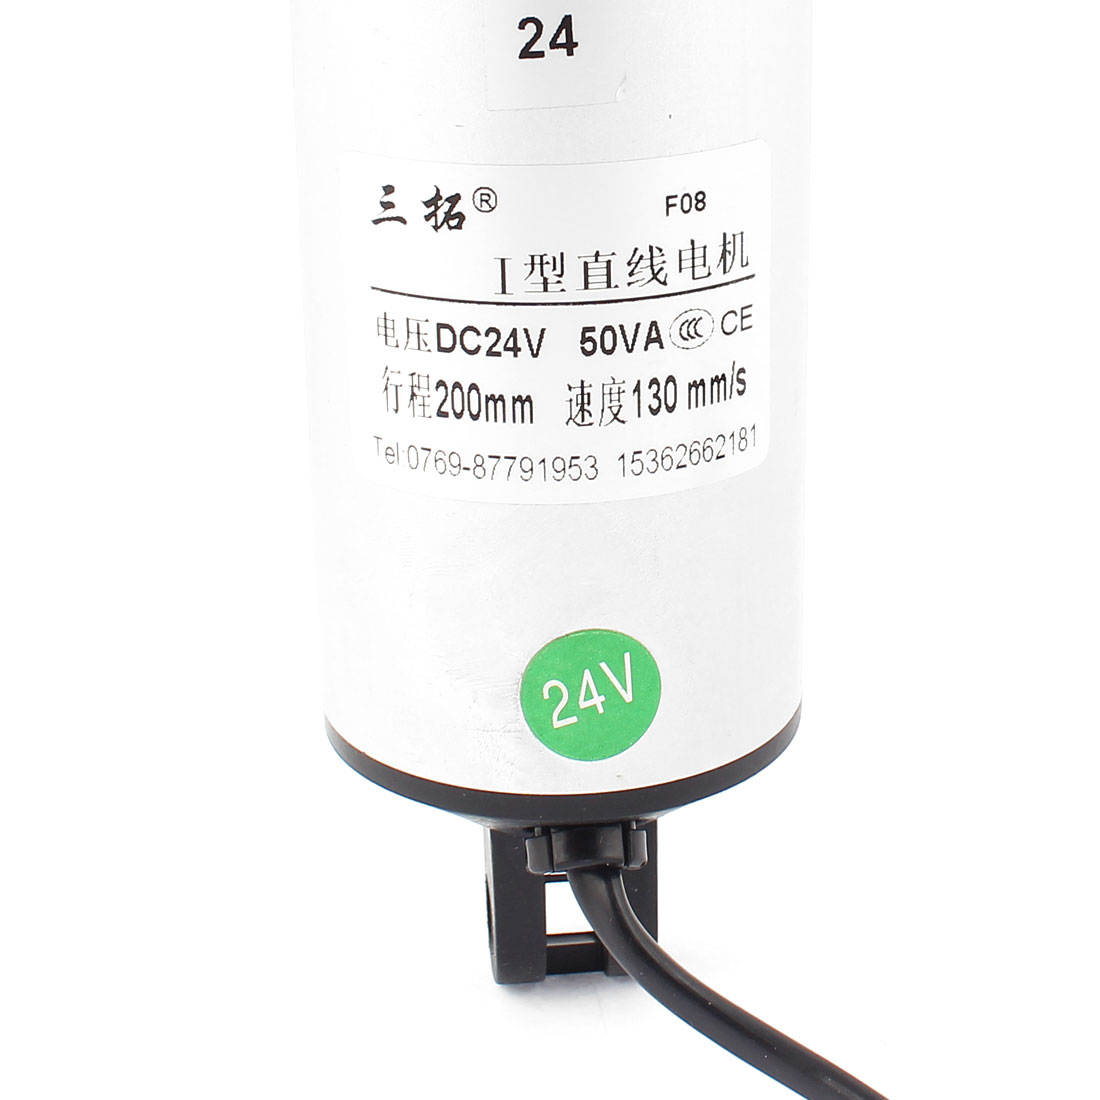 """DC 24V 8"""" Stroke Force 120N Electric Tubular Linear Actuator Motor 130mm/s - image 2 of 3"""